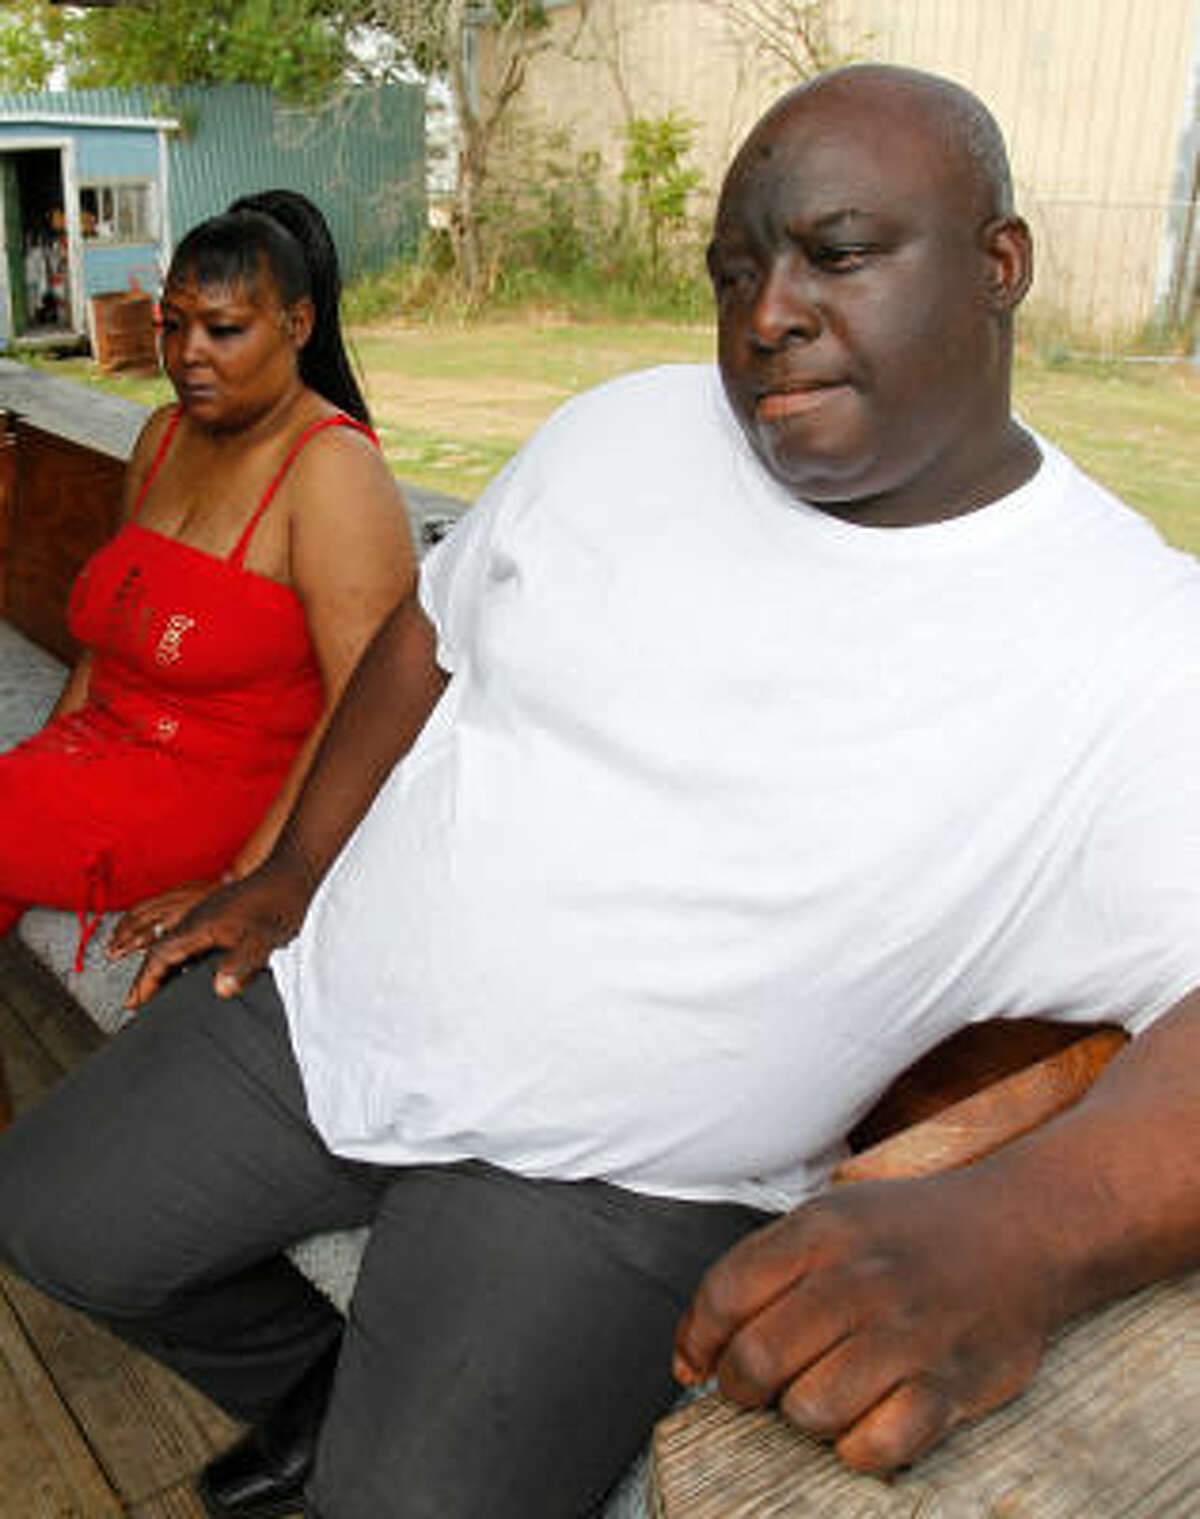 Sid Johnson is embarrassed about not being able to provide properly for his family. His wife, Judy, left, has been diagnosed with an autoimmune disorder and requires a caretaker.